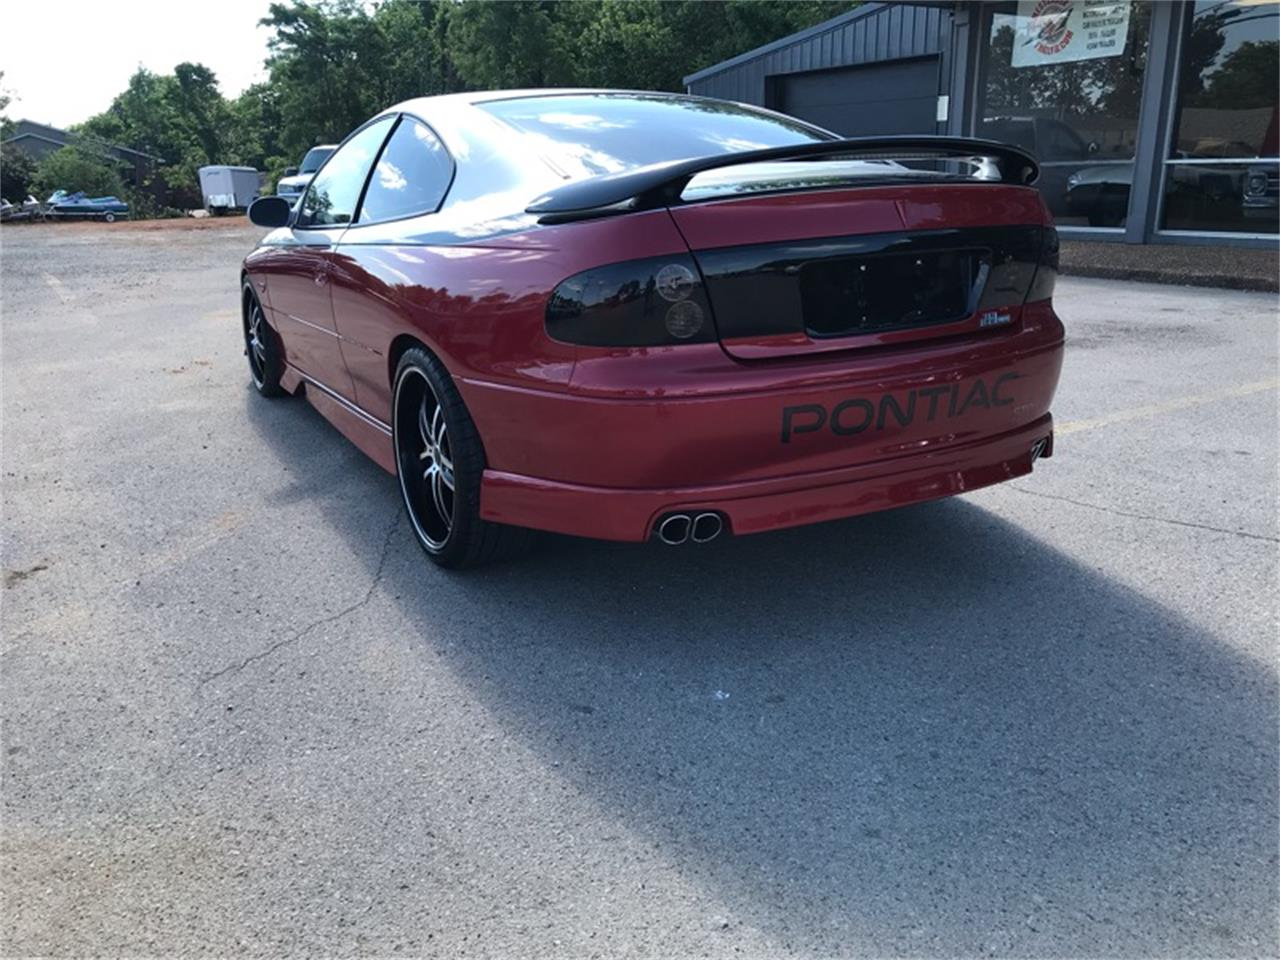 Large Picture of '04 Pontiac GTO located in Tennessee - $9,500.00 - Q3G4